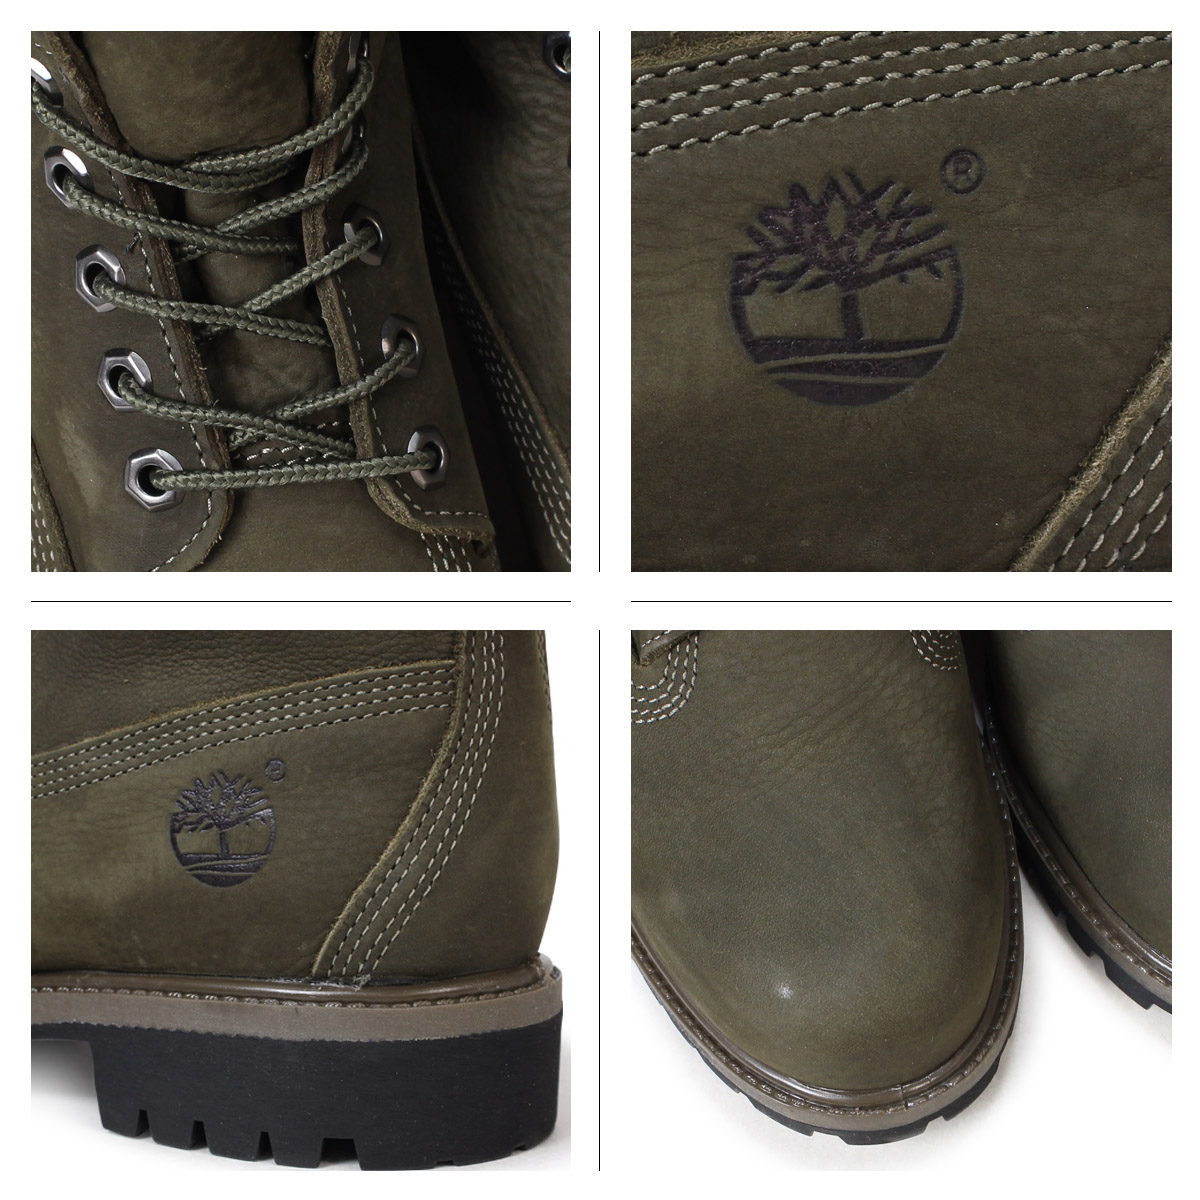 6 inches of Timberland boots men Timberland 6INCH PREMIUM BOOTS A1M47 W Wise premium waterproofing dark brown